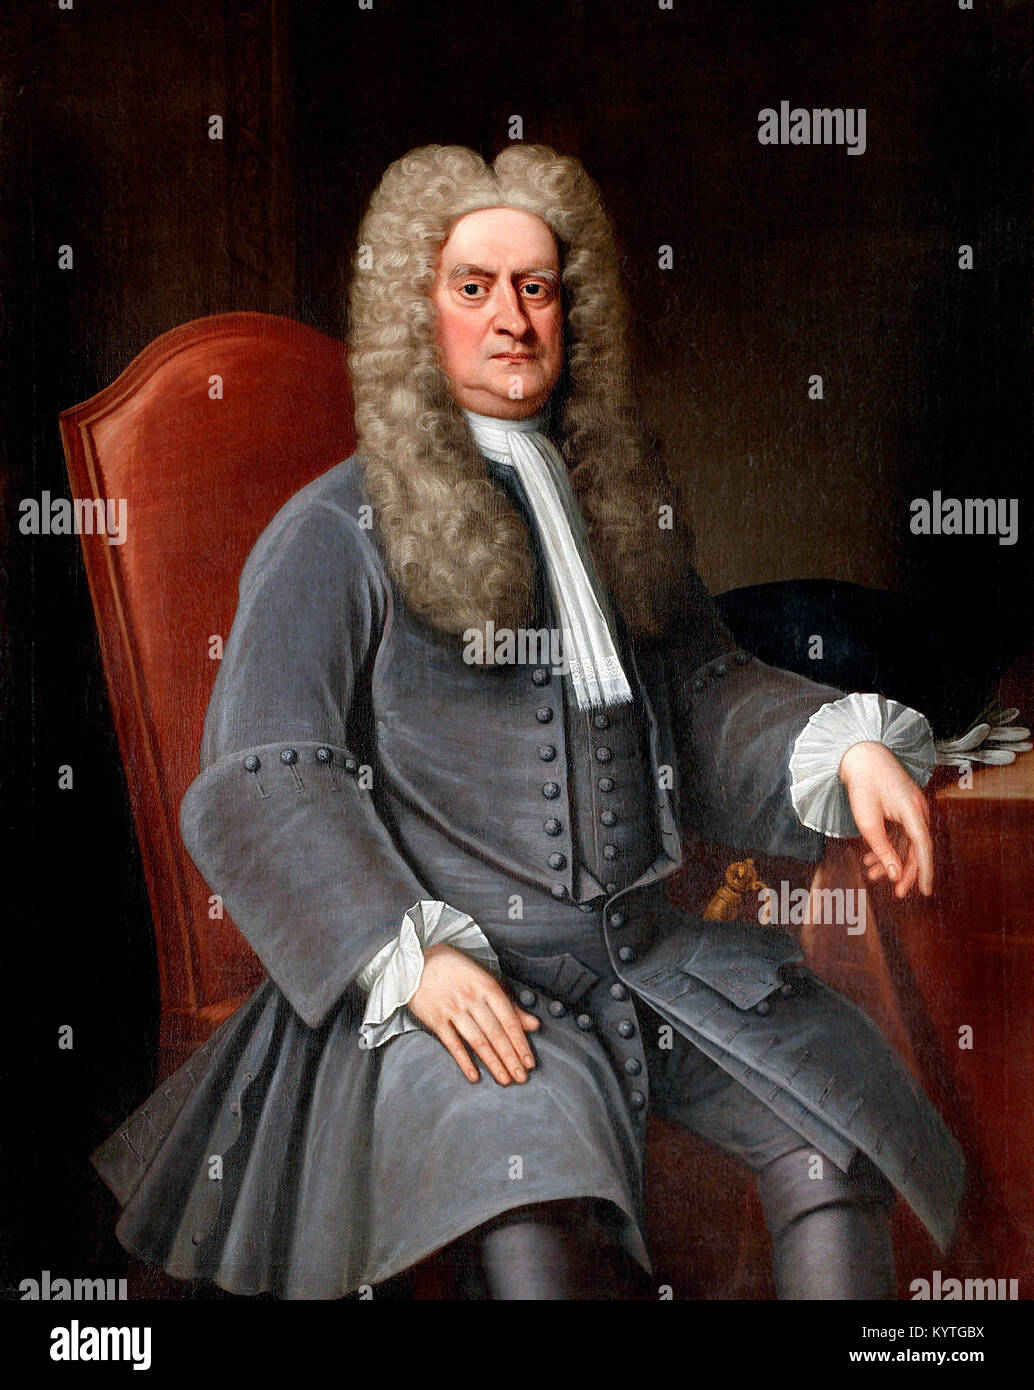 Sir Isaac Newton (1642-1727), portrait of the English physicist and mathematician, c.1715-20 - Stock Image